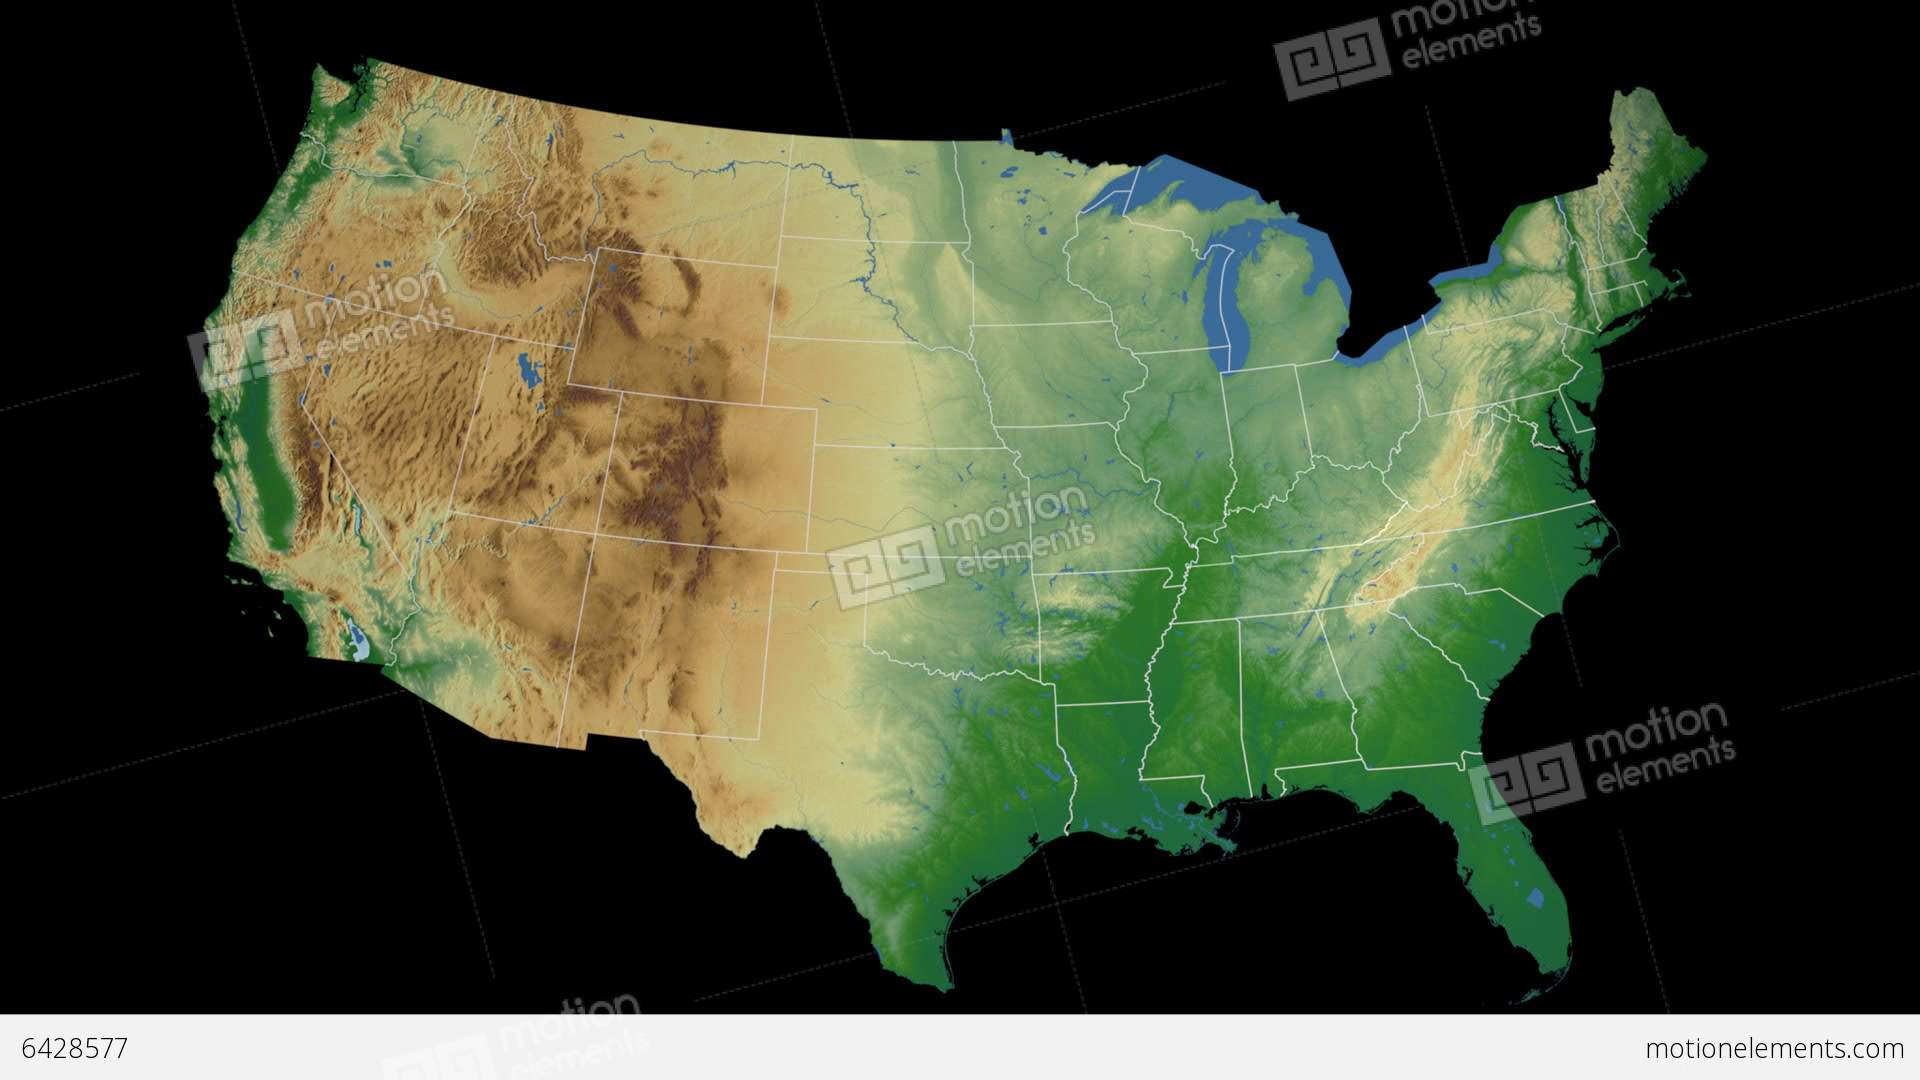 Kentucky State USA Extruded On The Physical Map Stock Animation - Kentucky on a map of usa